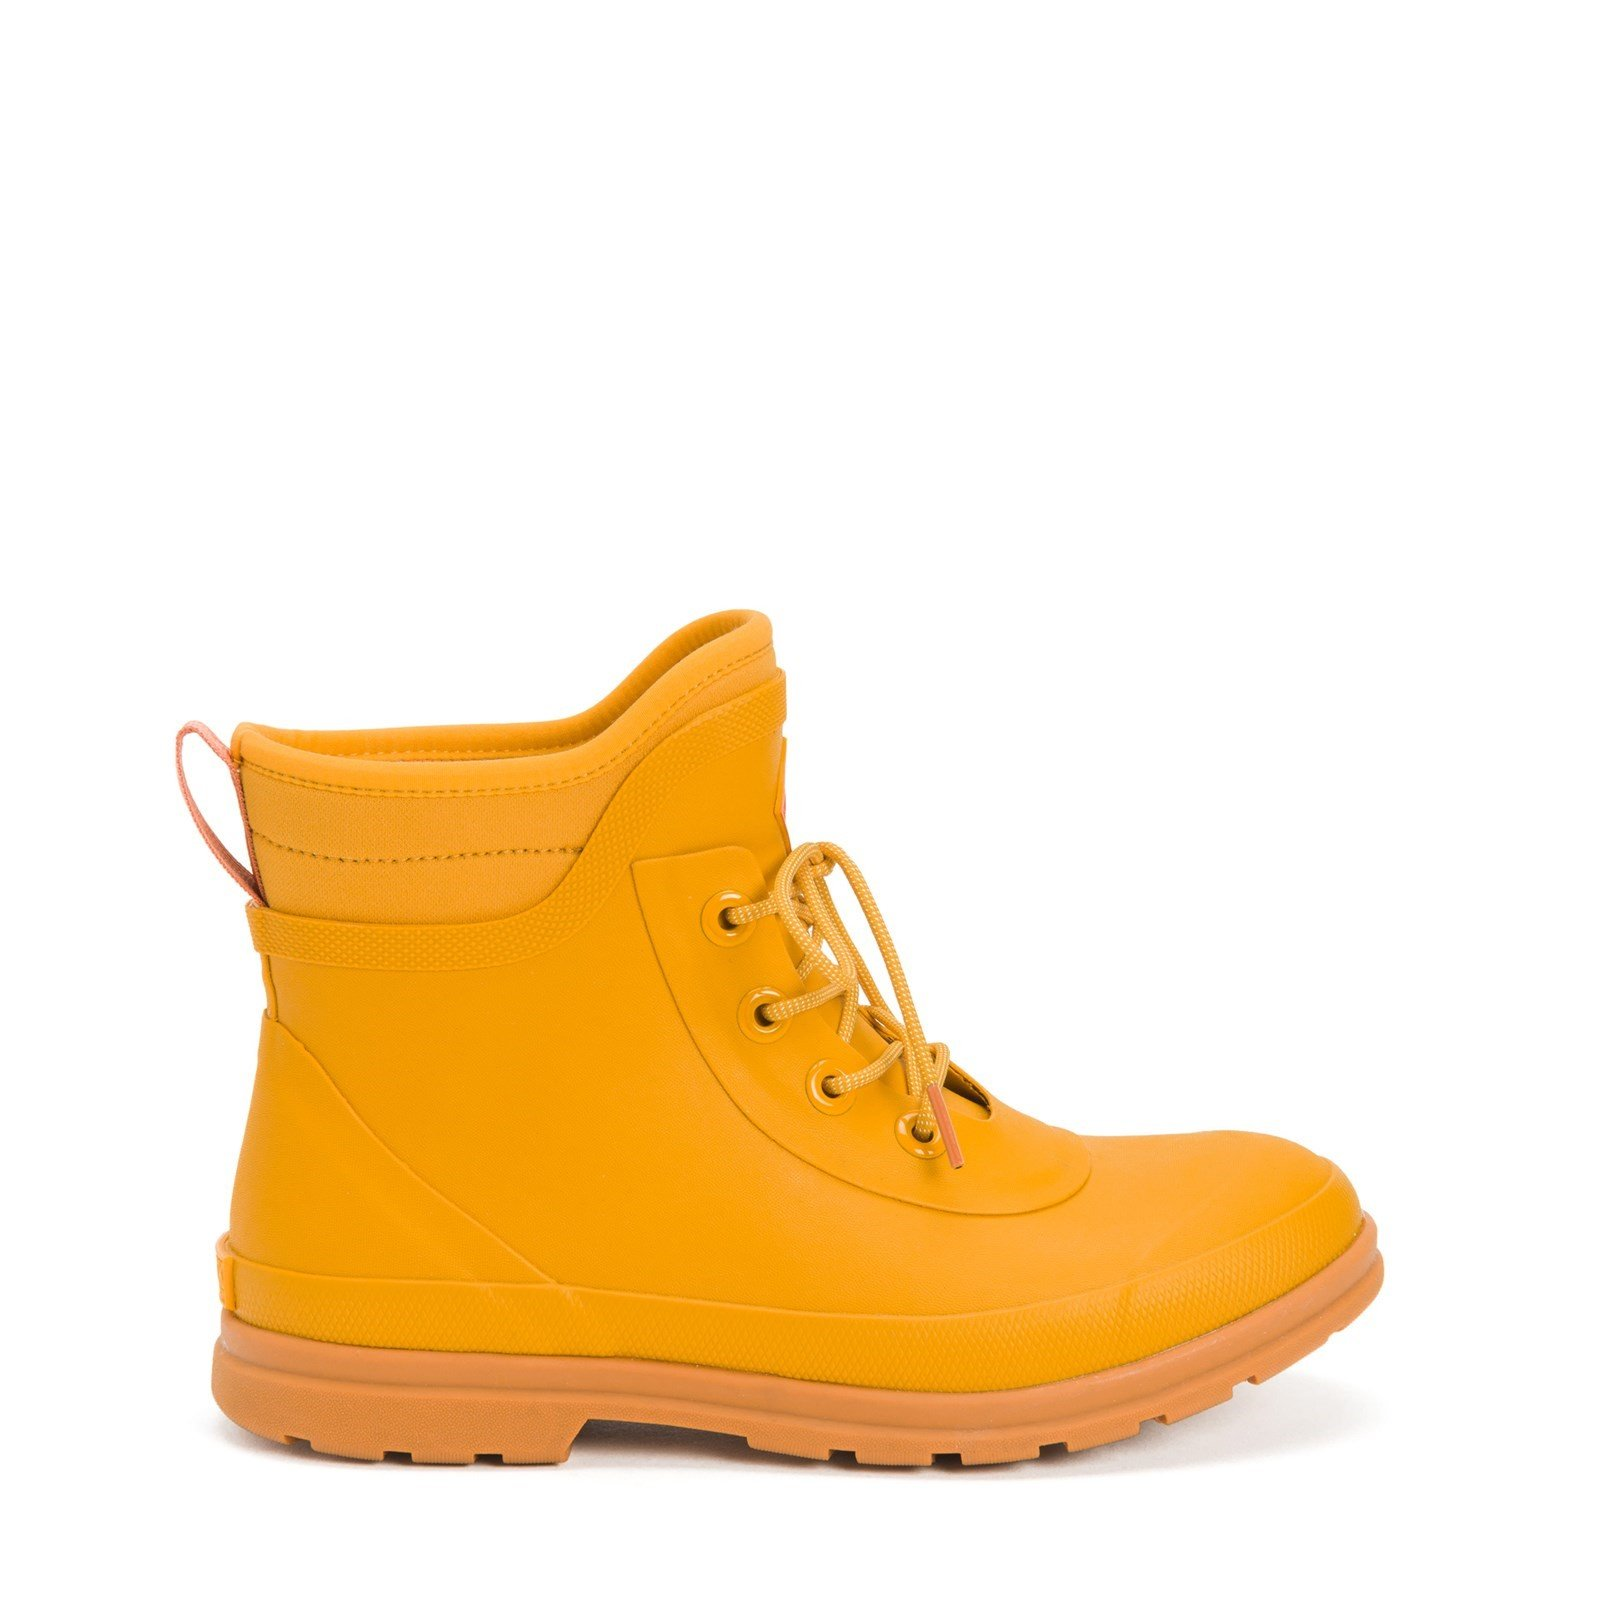 Muck Boots Women's Originals Lace Up Ankle Boot Various Colours 30079 - Sunflower 7